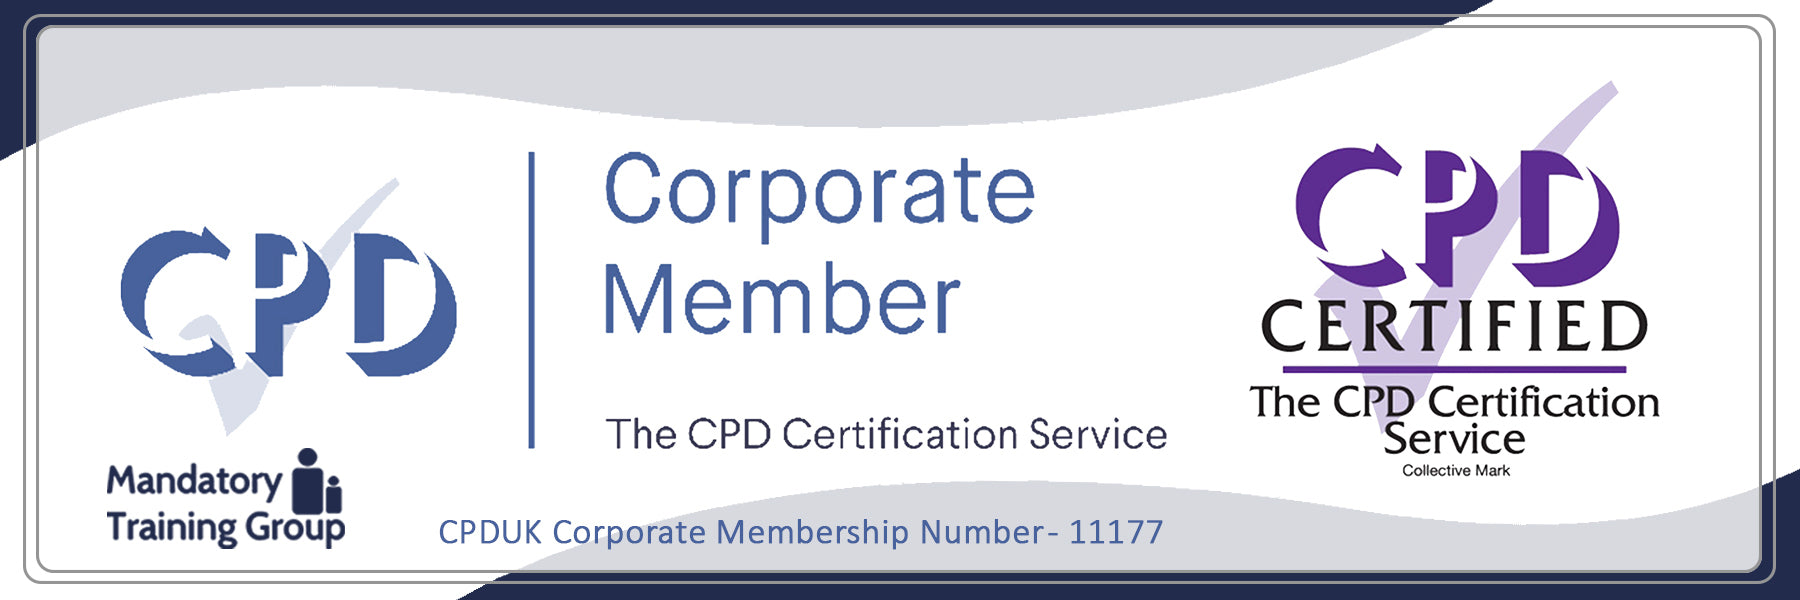 Care Certificate Standard 9 - Train the Trainer + Trainer Pack - Online CPD Course - The Mandatory Training Group UK - (2)